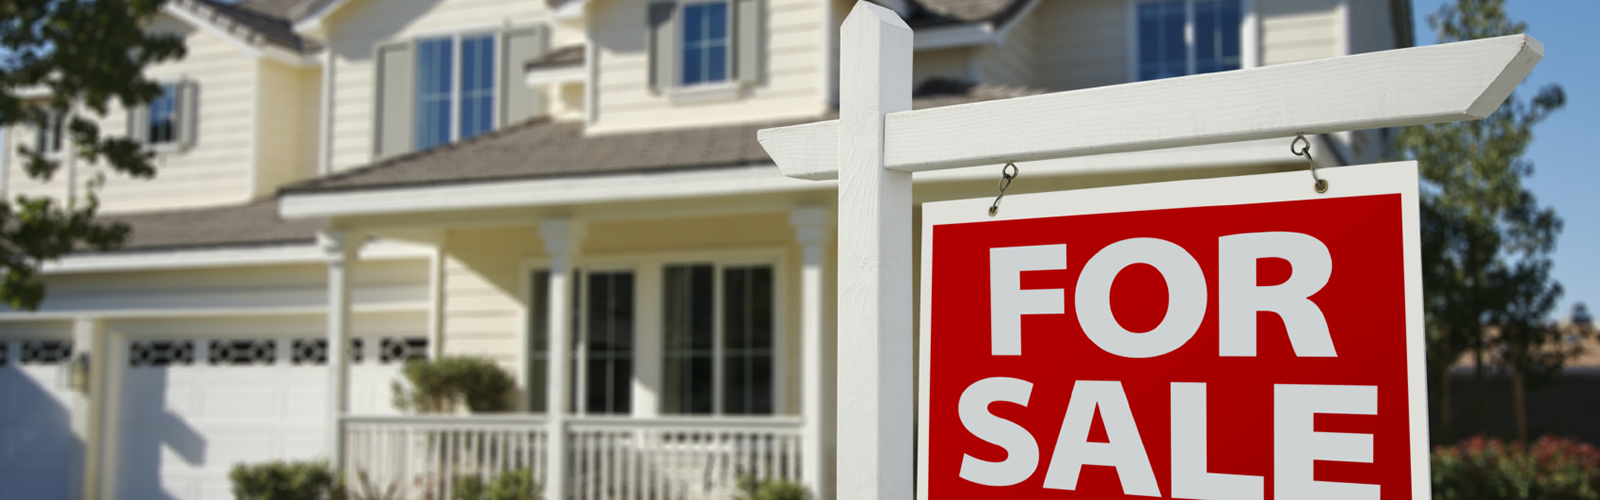 Home Sellers Common Mistakes (Part 2)